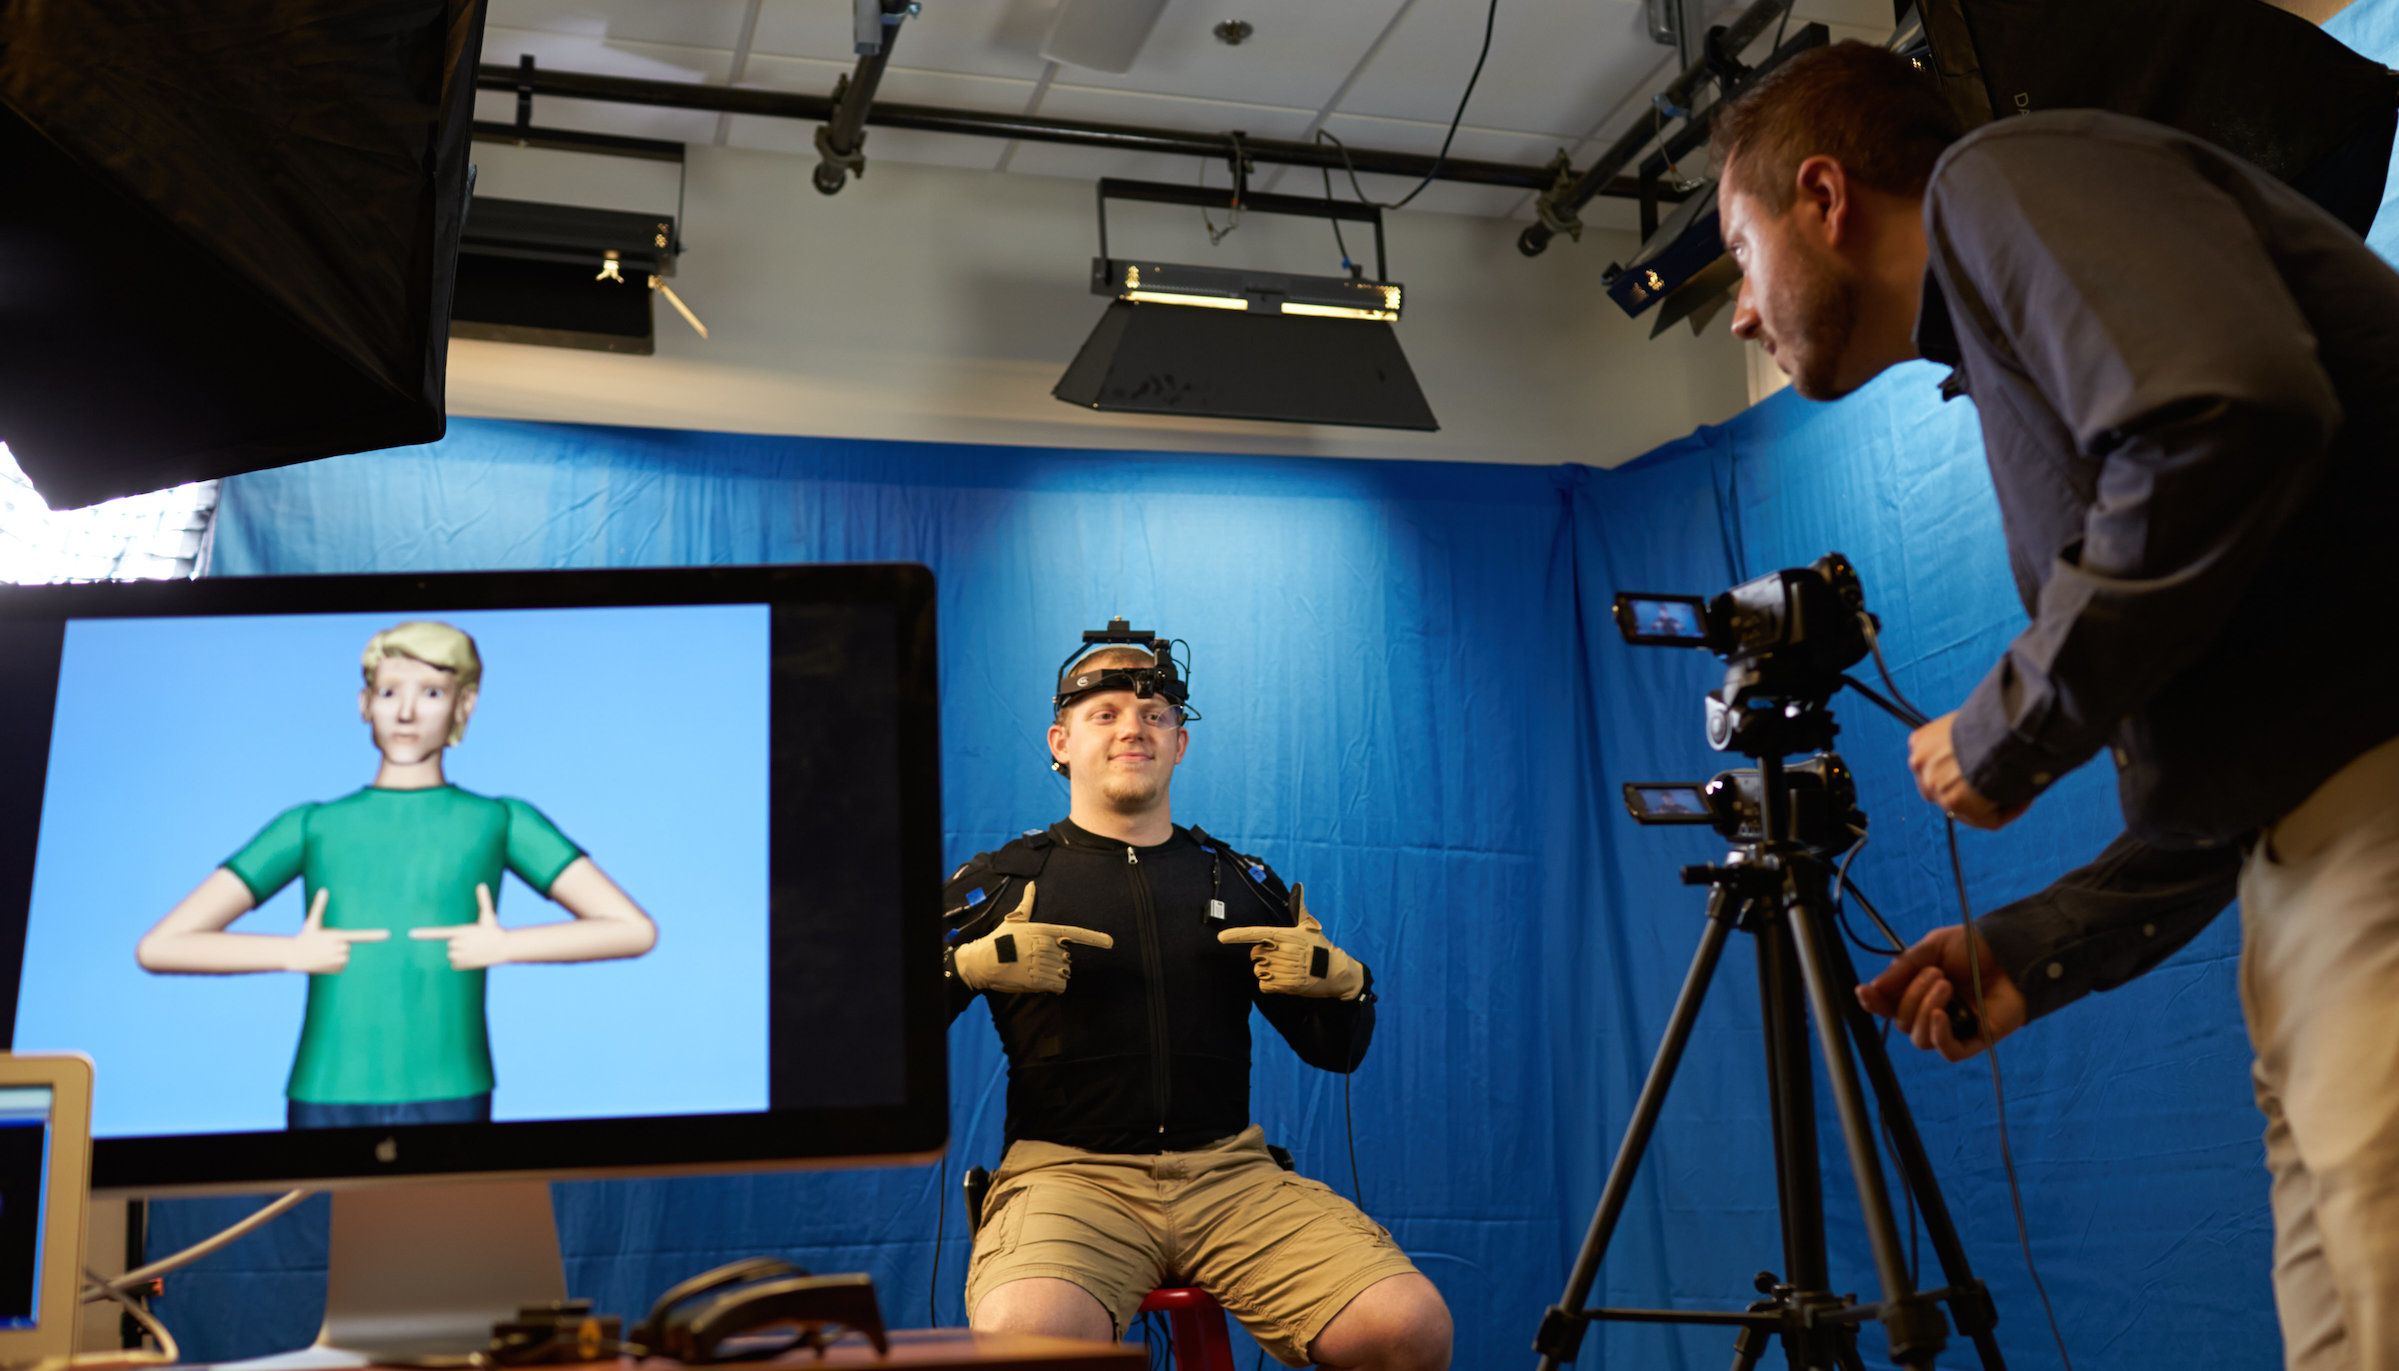 An ASL signer wearing motion-capture equipment.